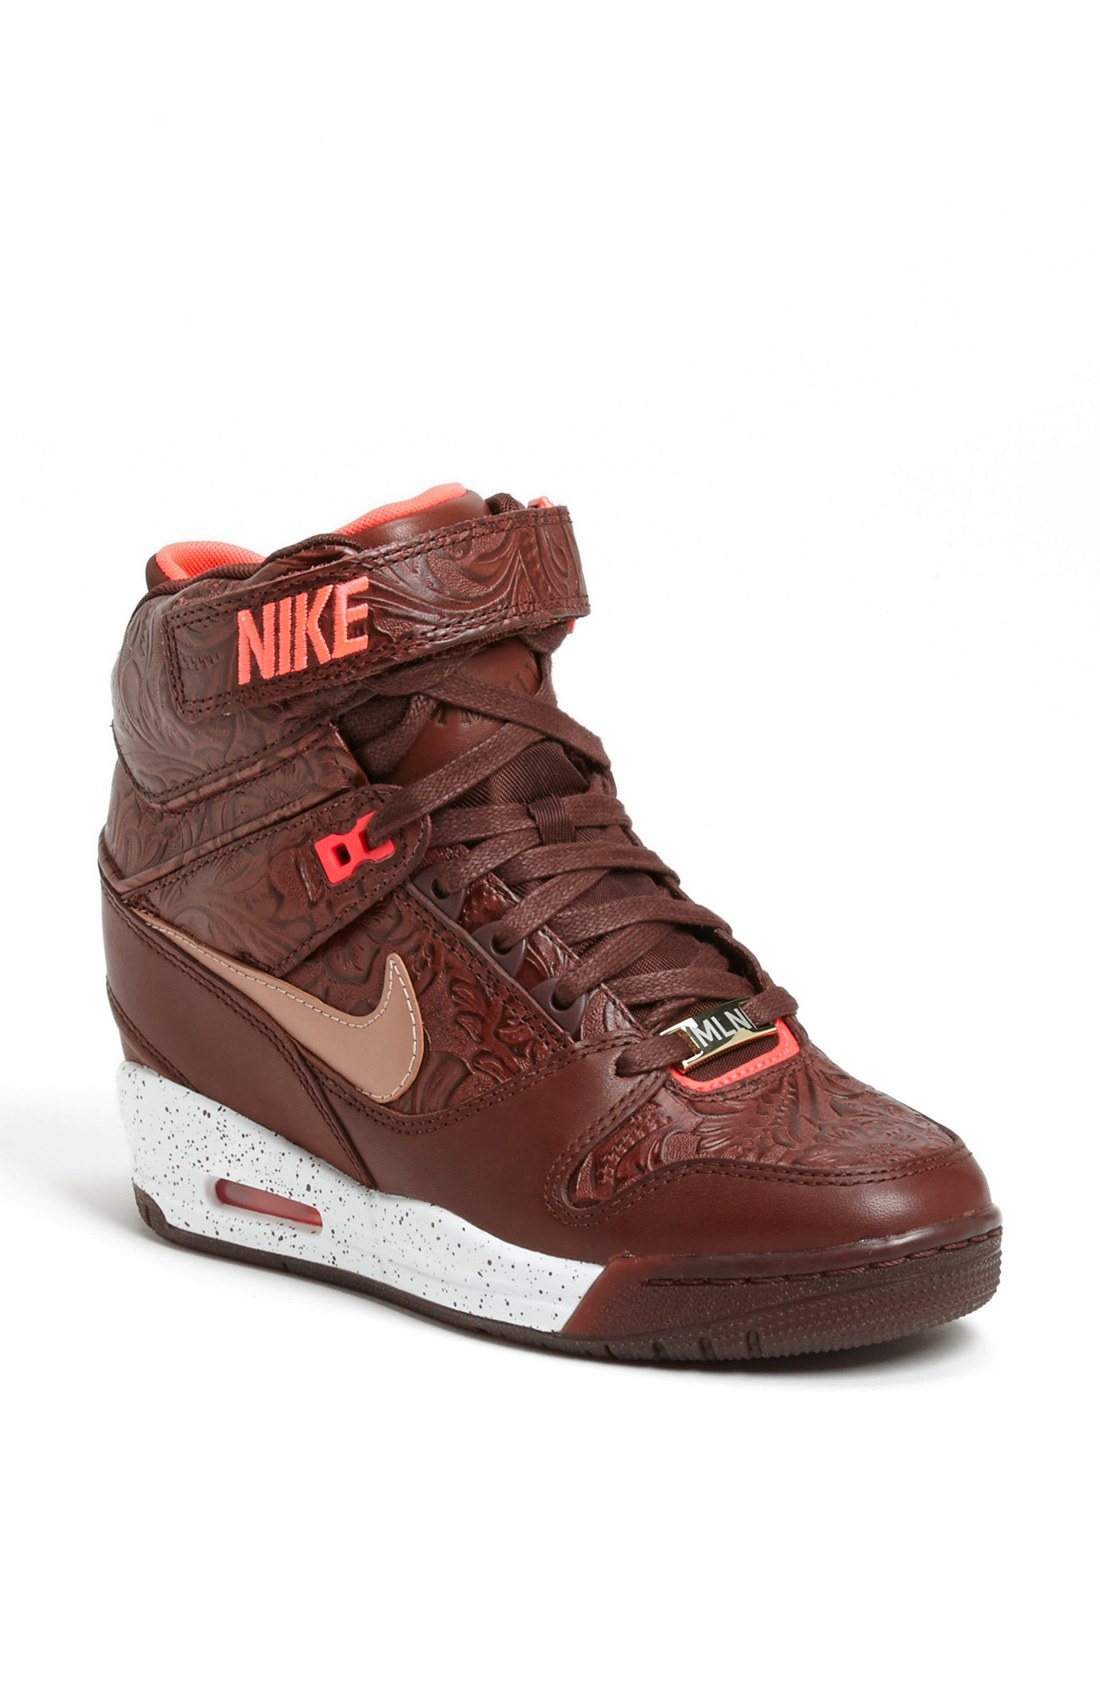 nike air revolution sky hi hidden wedge sneaker in brown brown metallic milano lyst. Black Bedroom Furniture Sets. Home Design Ideas